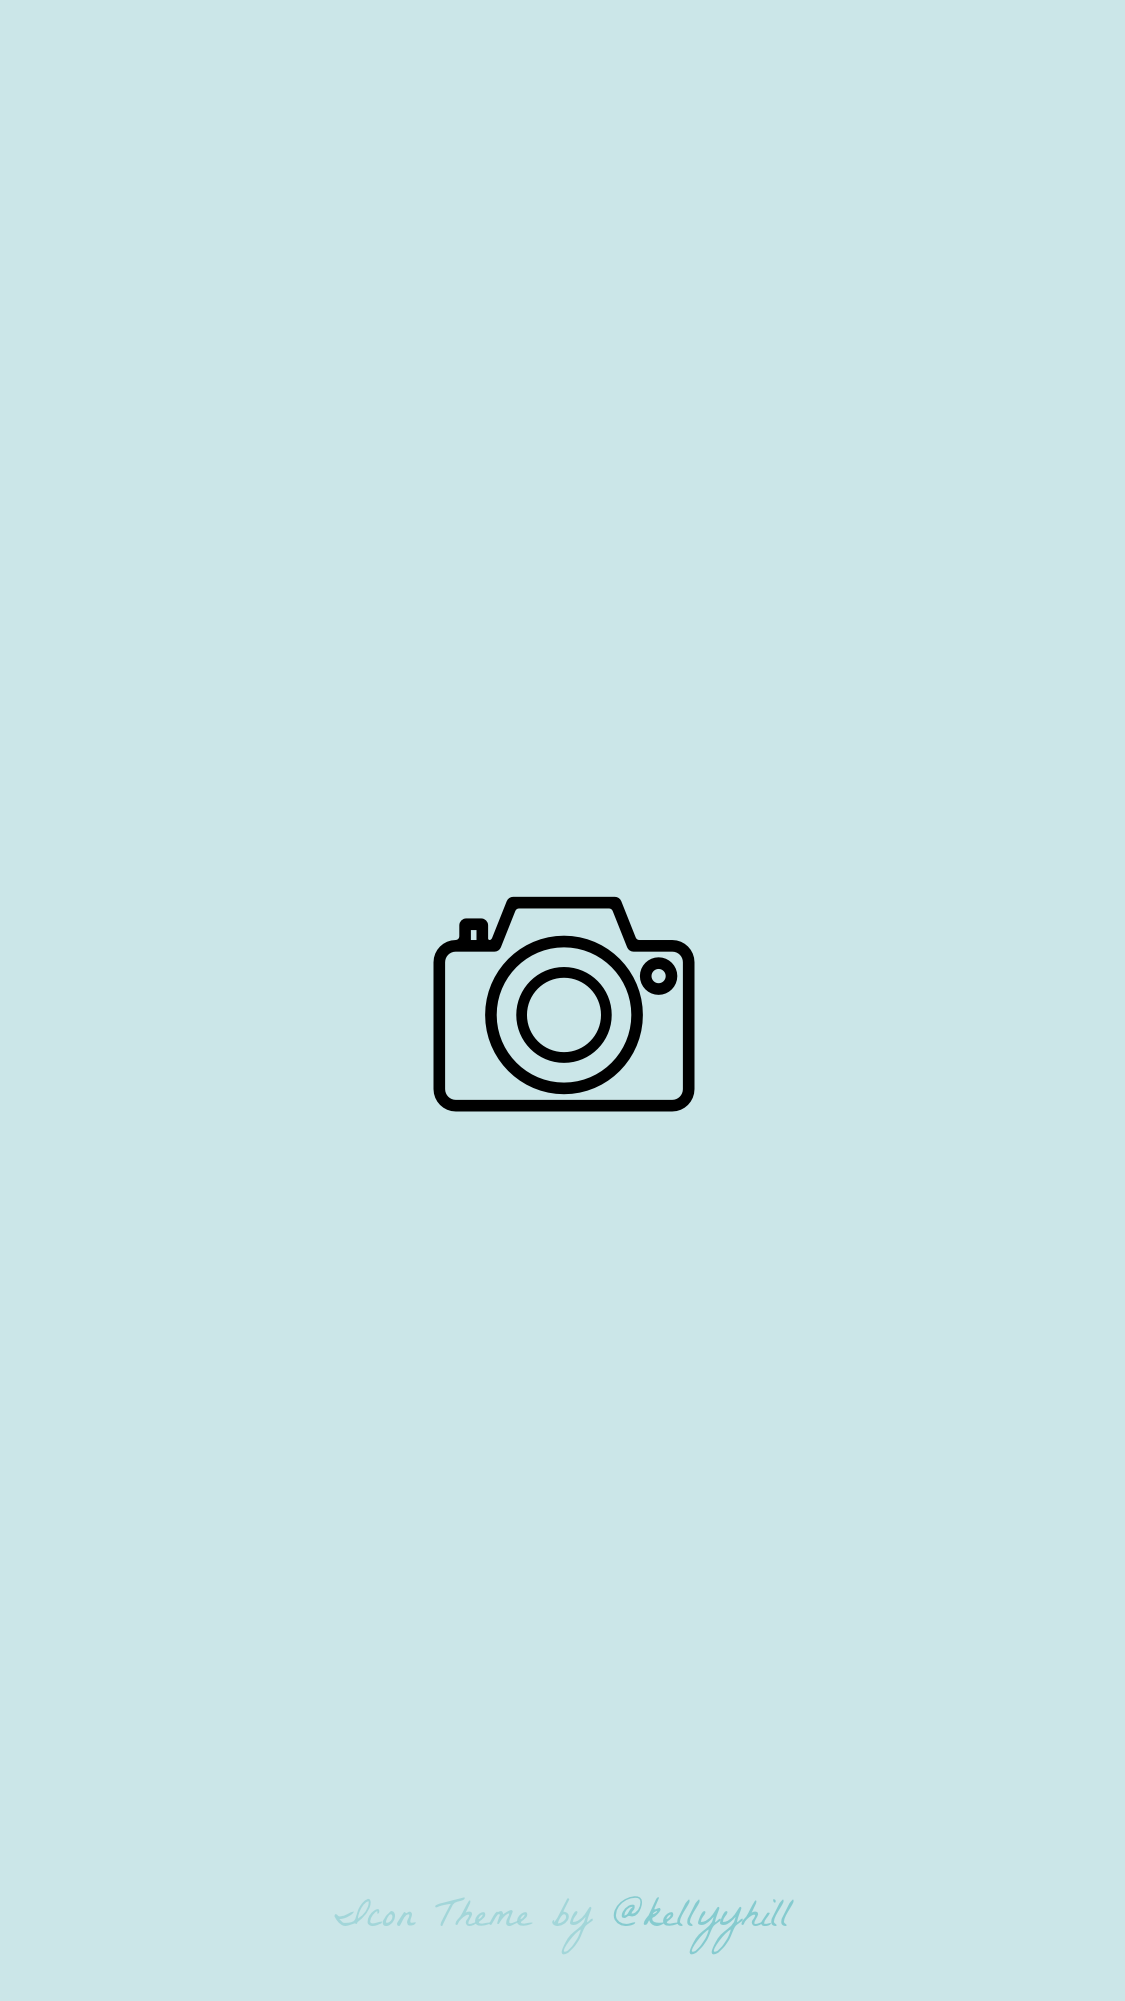 Kelly Hill Free Instagram Highlights Template Wanderlust Blue 02 Icons